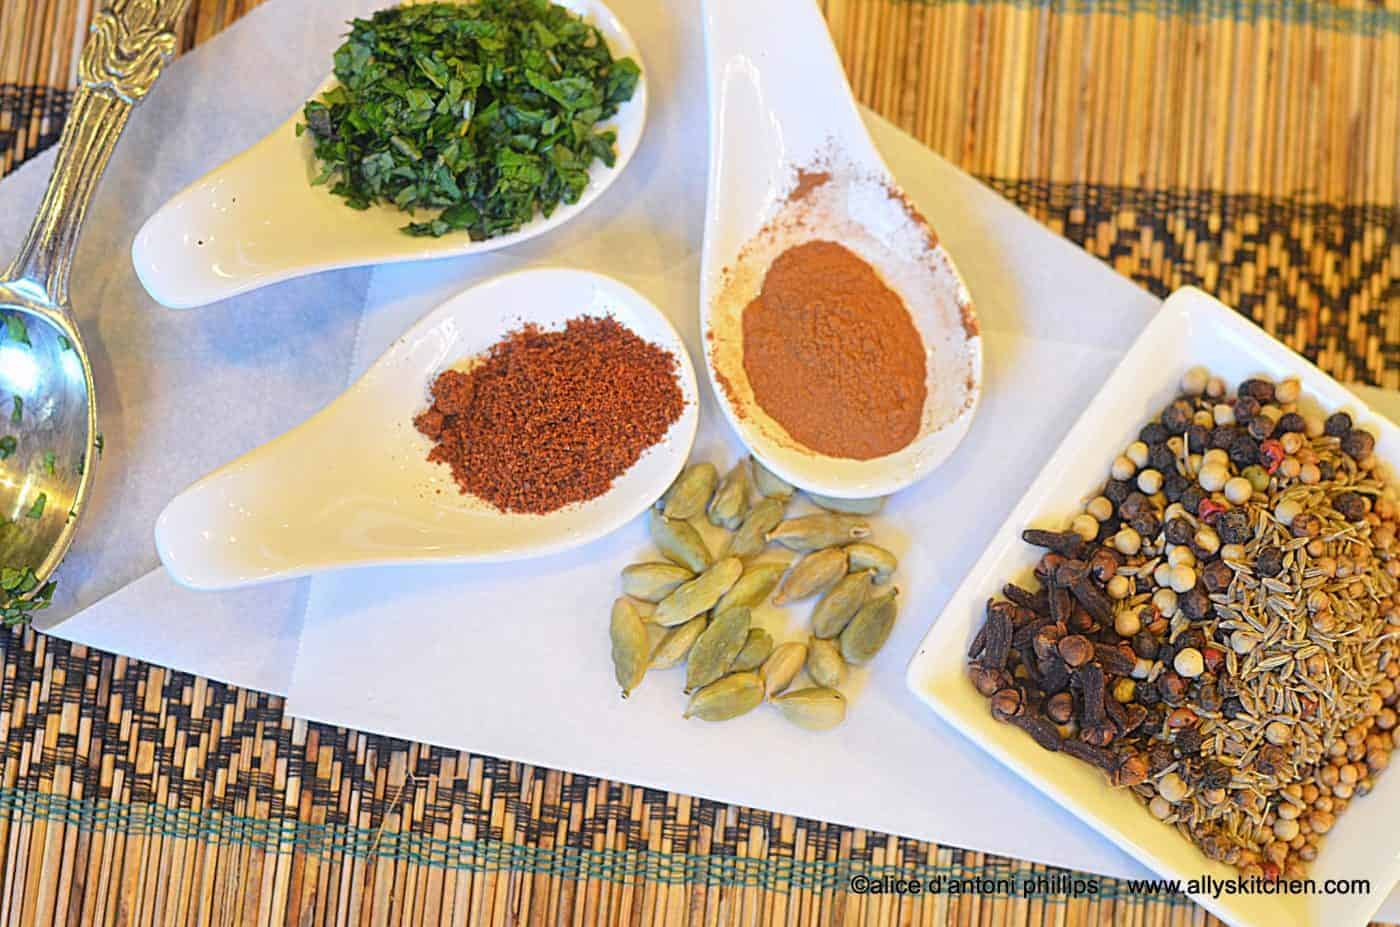 13 healthy reasons to use spices